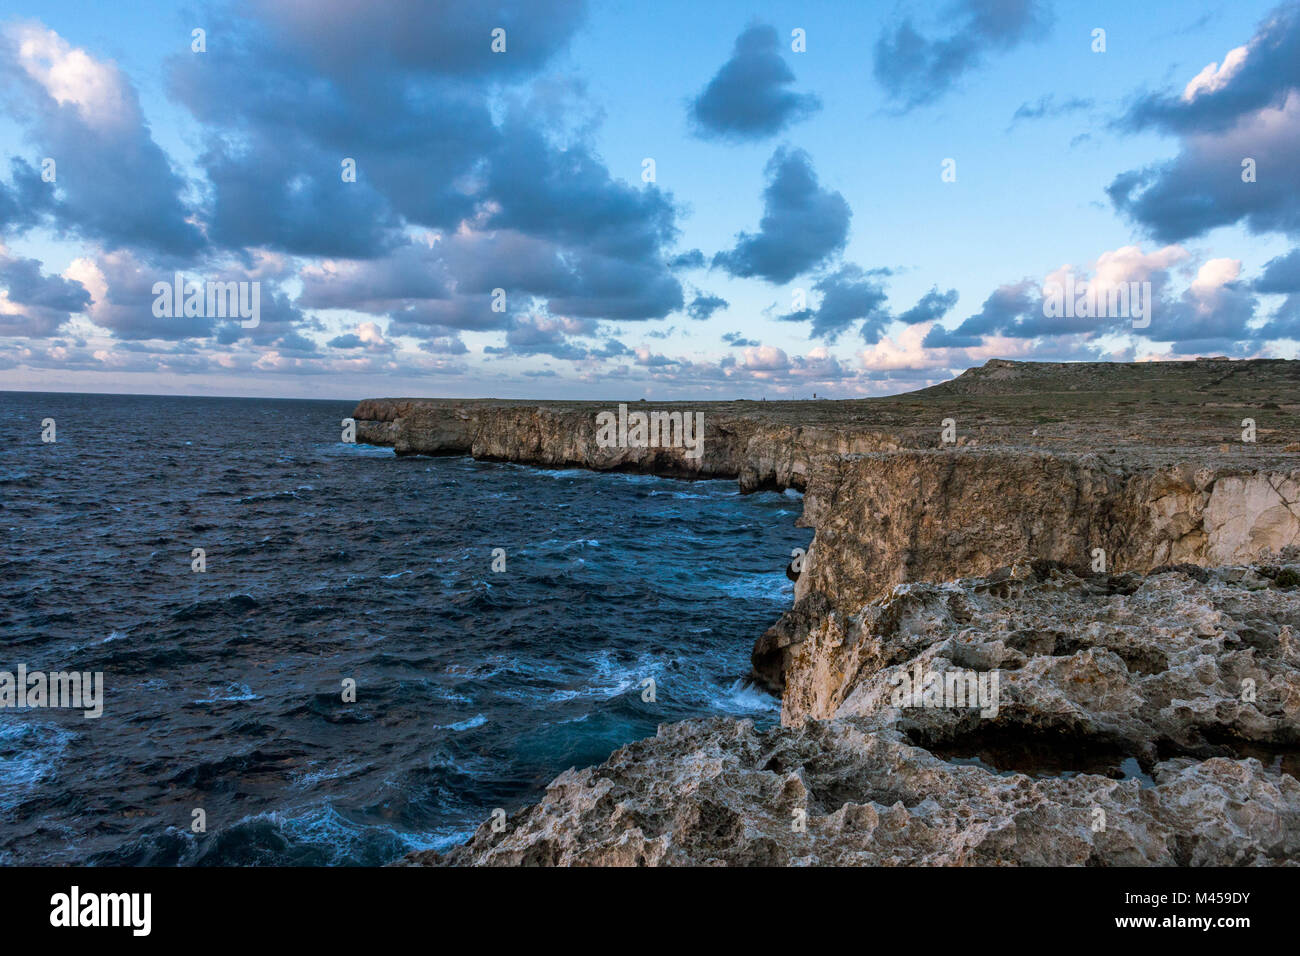 Cloudy day in Menorca. - Stock Image